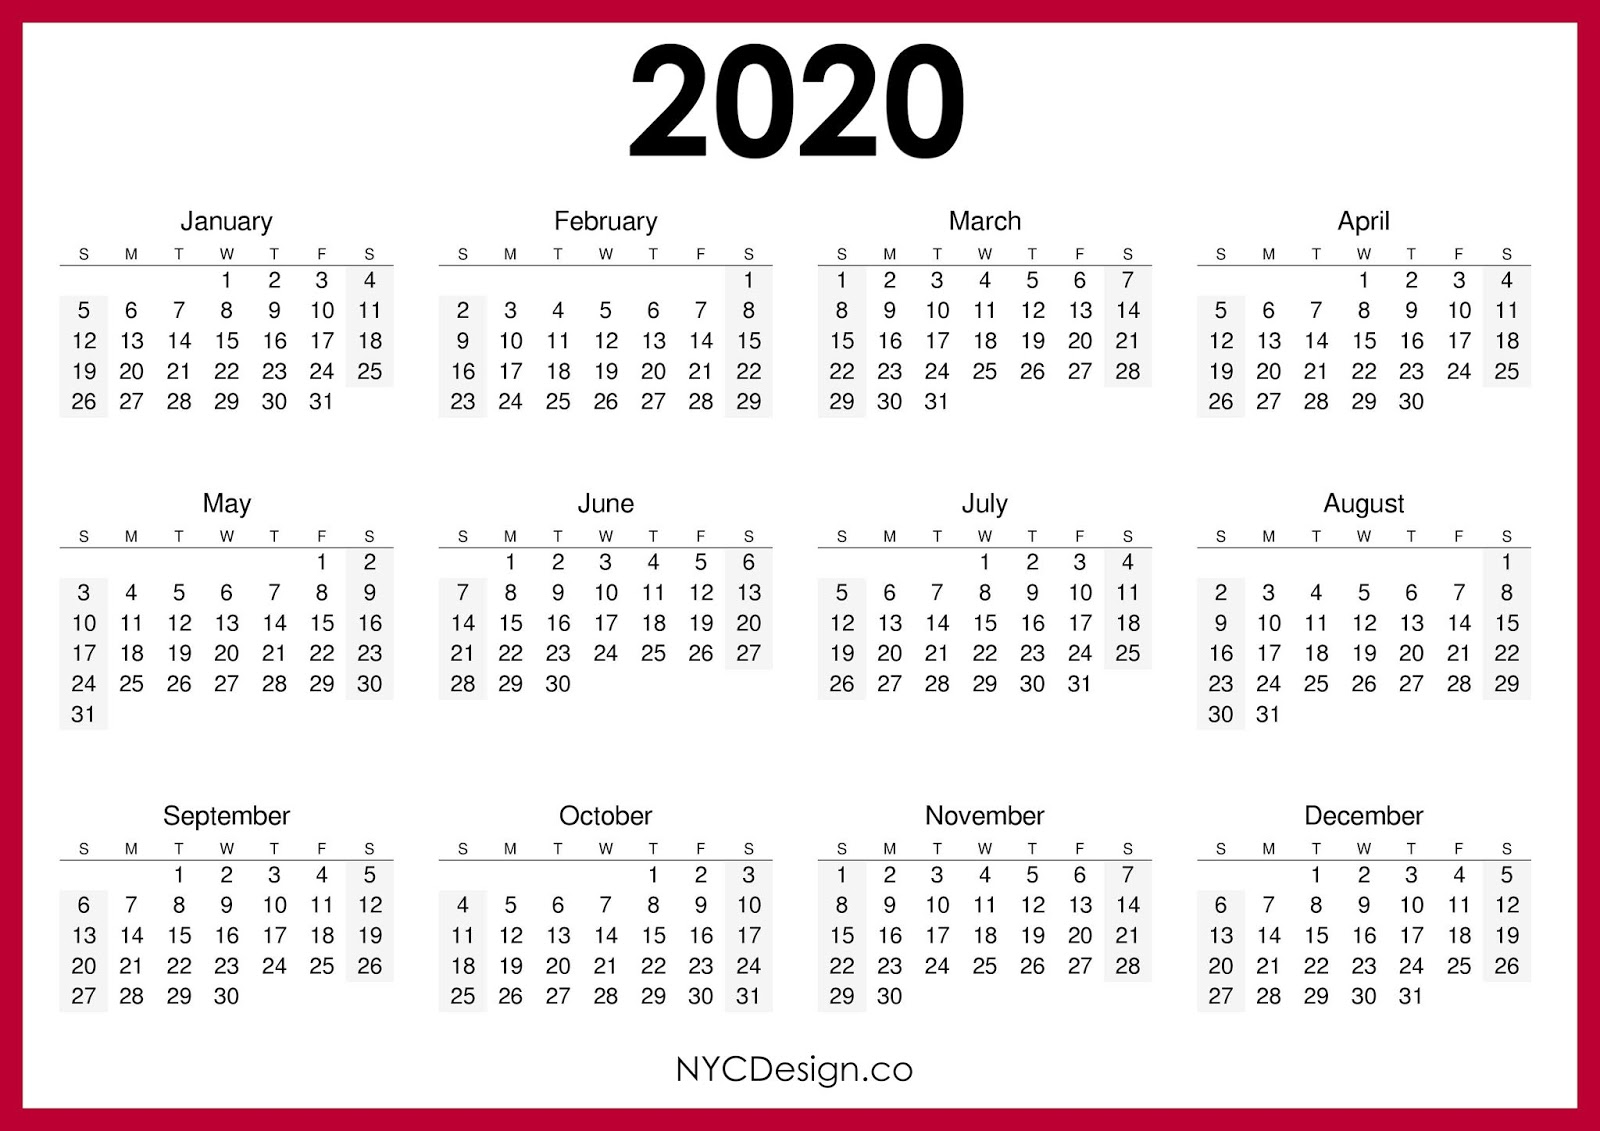 New York 2020 Calendar New York Web Design Studio, New York, NY: 2020 Calendar